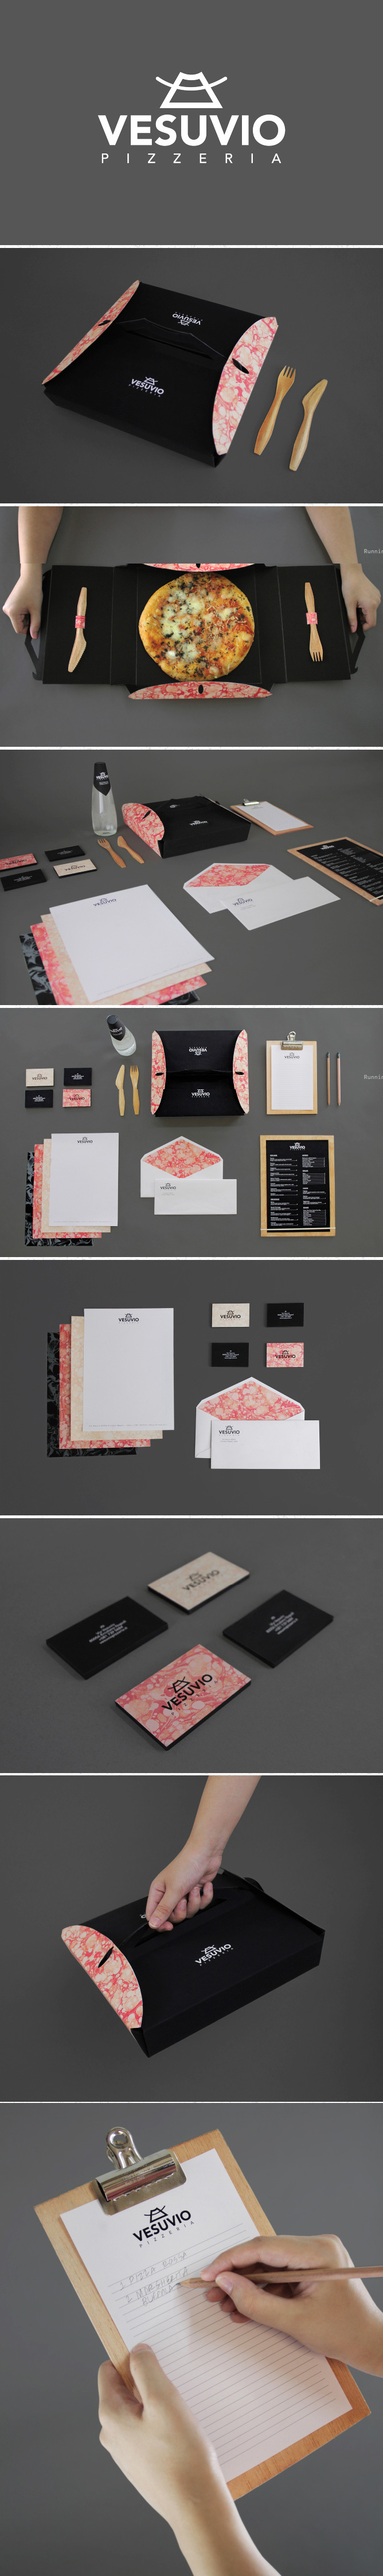 Vesuvio Pizzeria - Angelica Baini  This was a university assignment to make a take-out packaging design for any fast food of our choice. Initially, the project was just to make the box but I expanded on doing the whole branding for it.   這是一所大學的分配作出取出包裝設計,我們在任何快餐。最初,該項目只是為了讓箱子,但我擴大做整體的品牌吧。